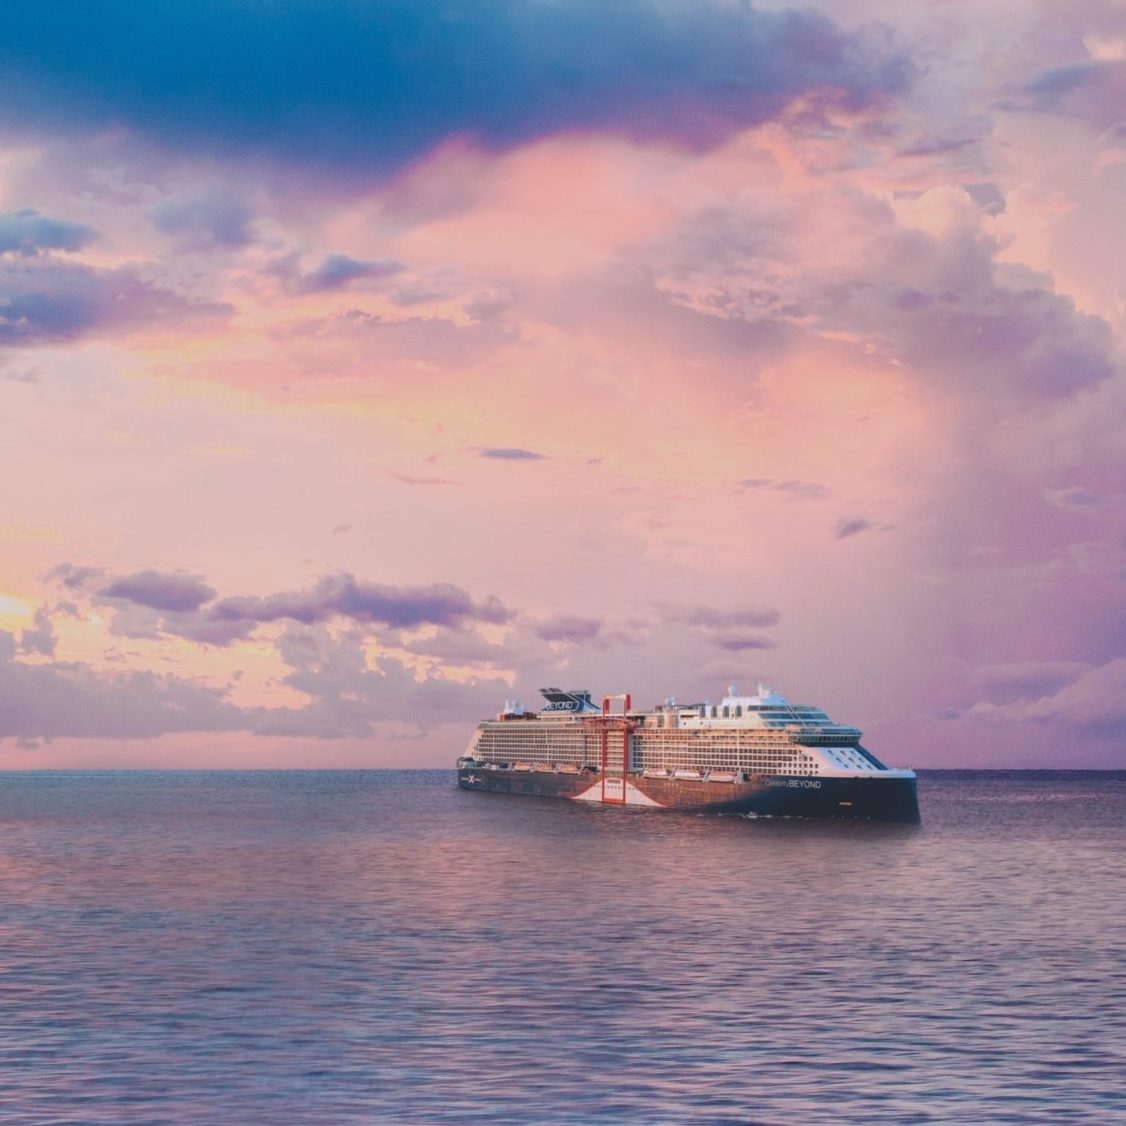 Celebrity Cruises says: 'It's About Time' to celebrate (safely) on the seas again